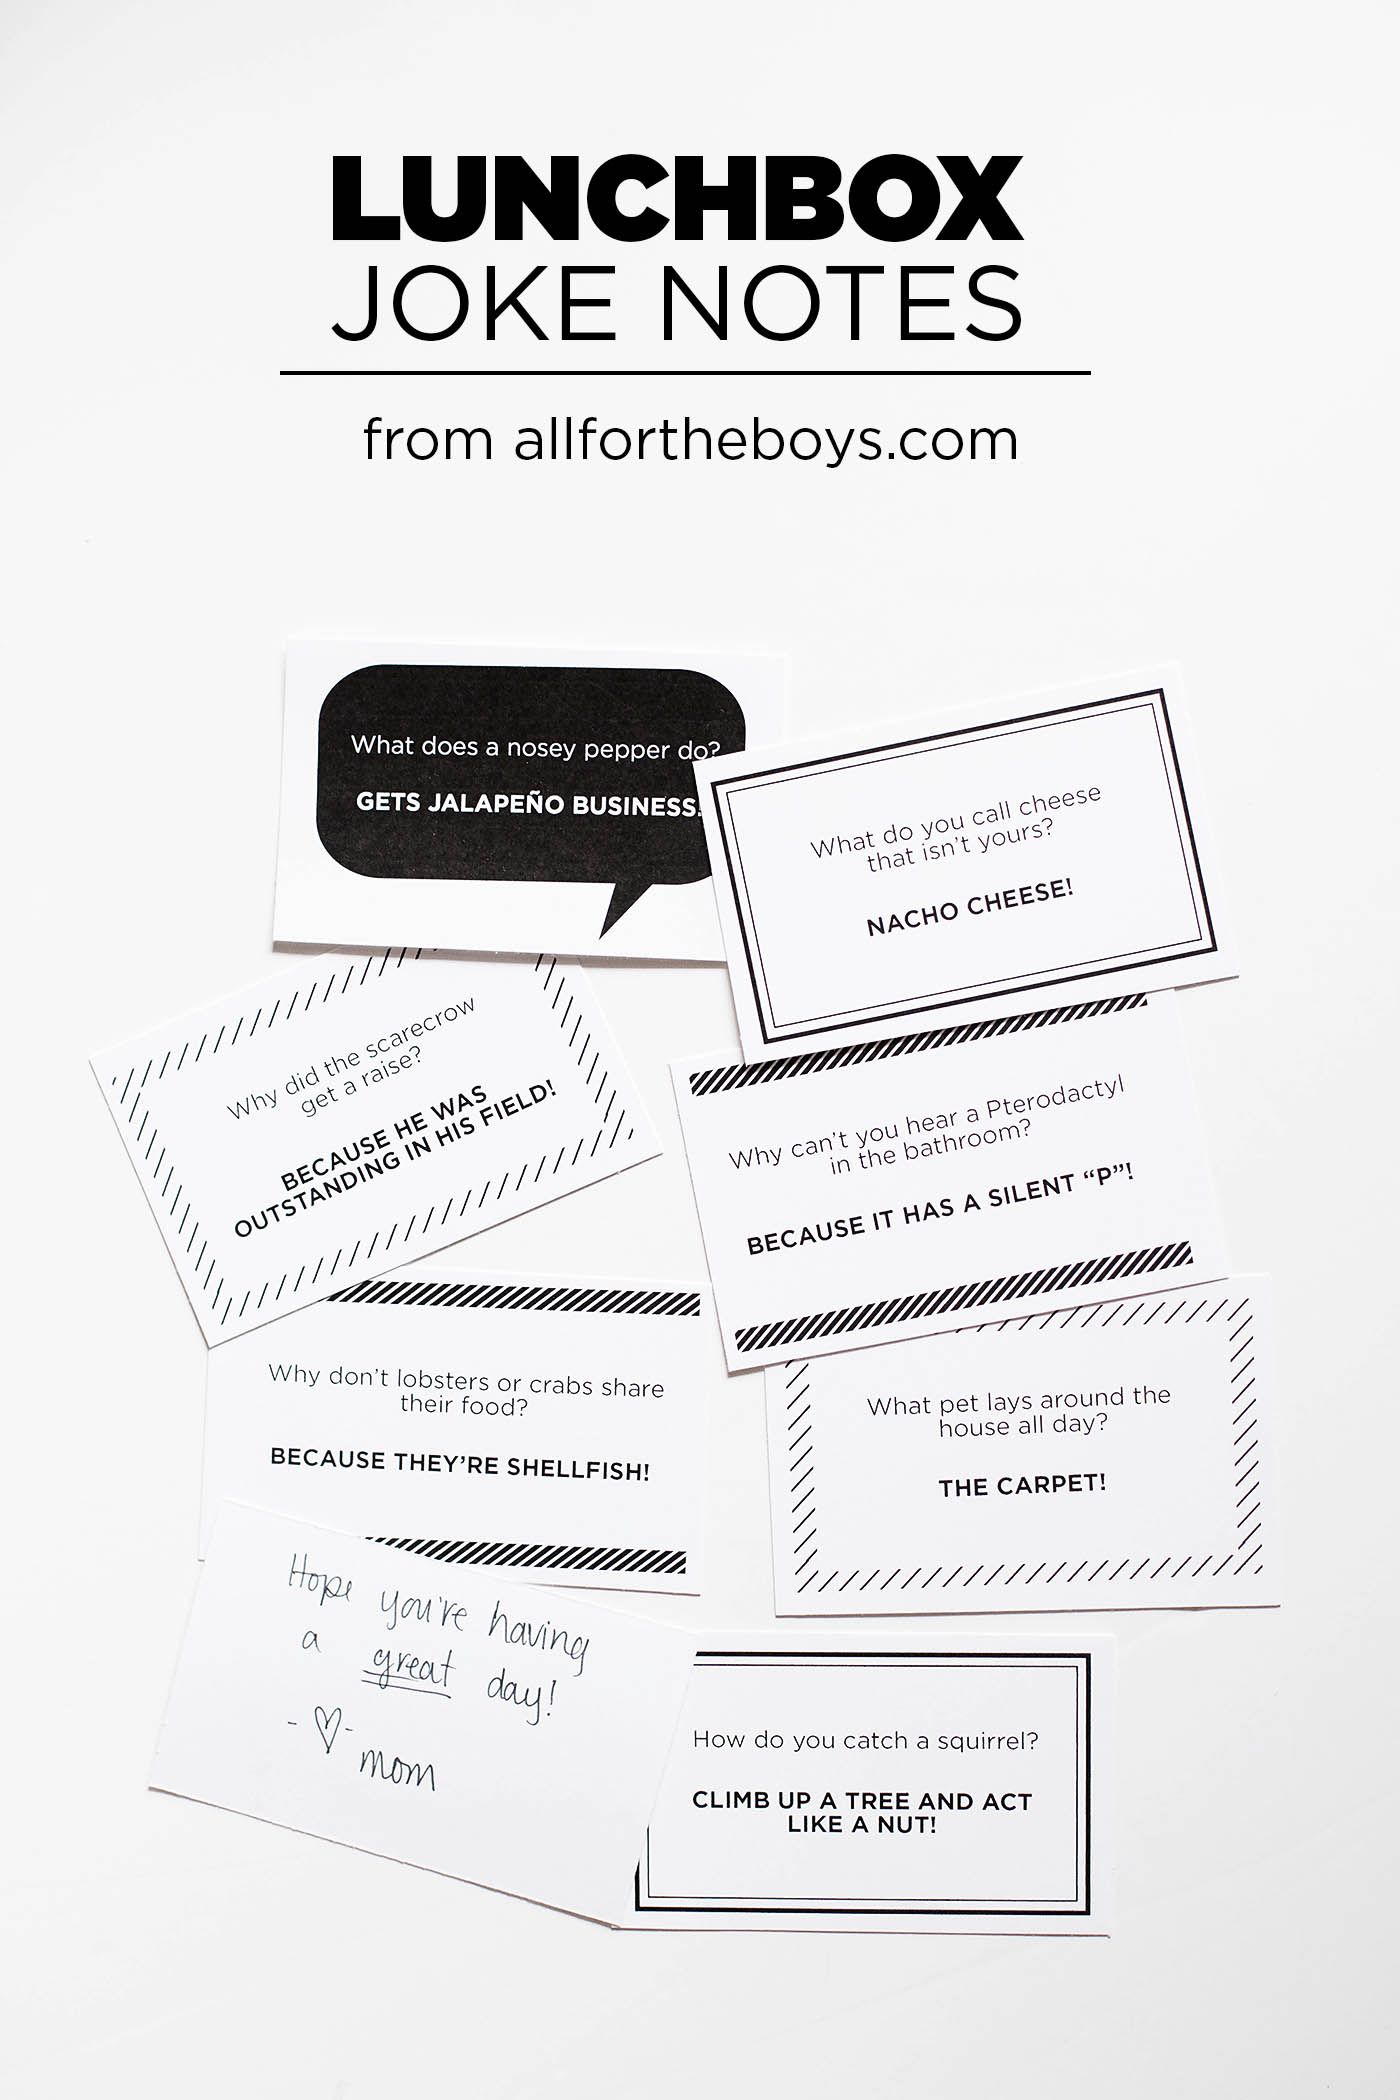 Free printable school lunch joke notes, write a quick note on the back and throw in their lunches!